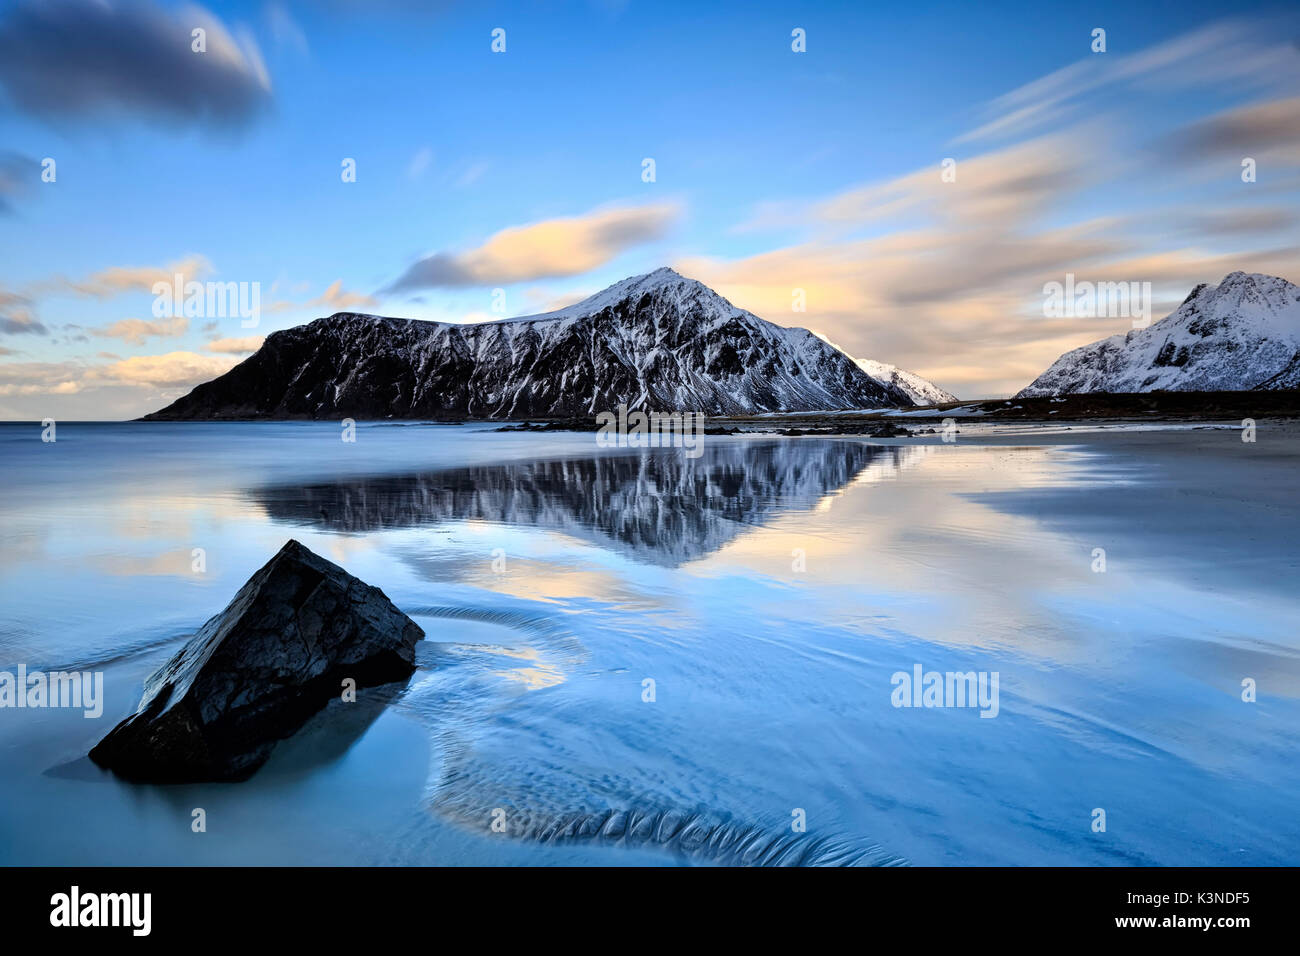 The icy waters of Flakstad Beach reflecting the snowy mountains, Lofoten Islands Skagsanden, Norway - Stock Image